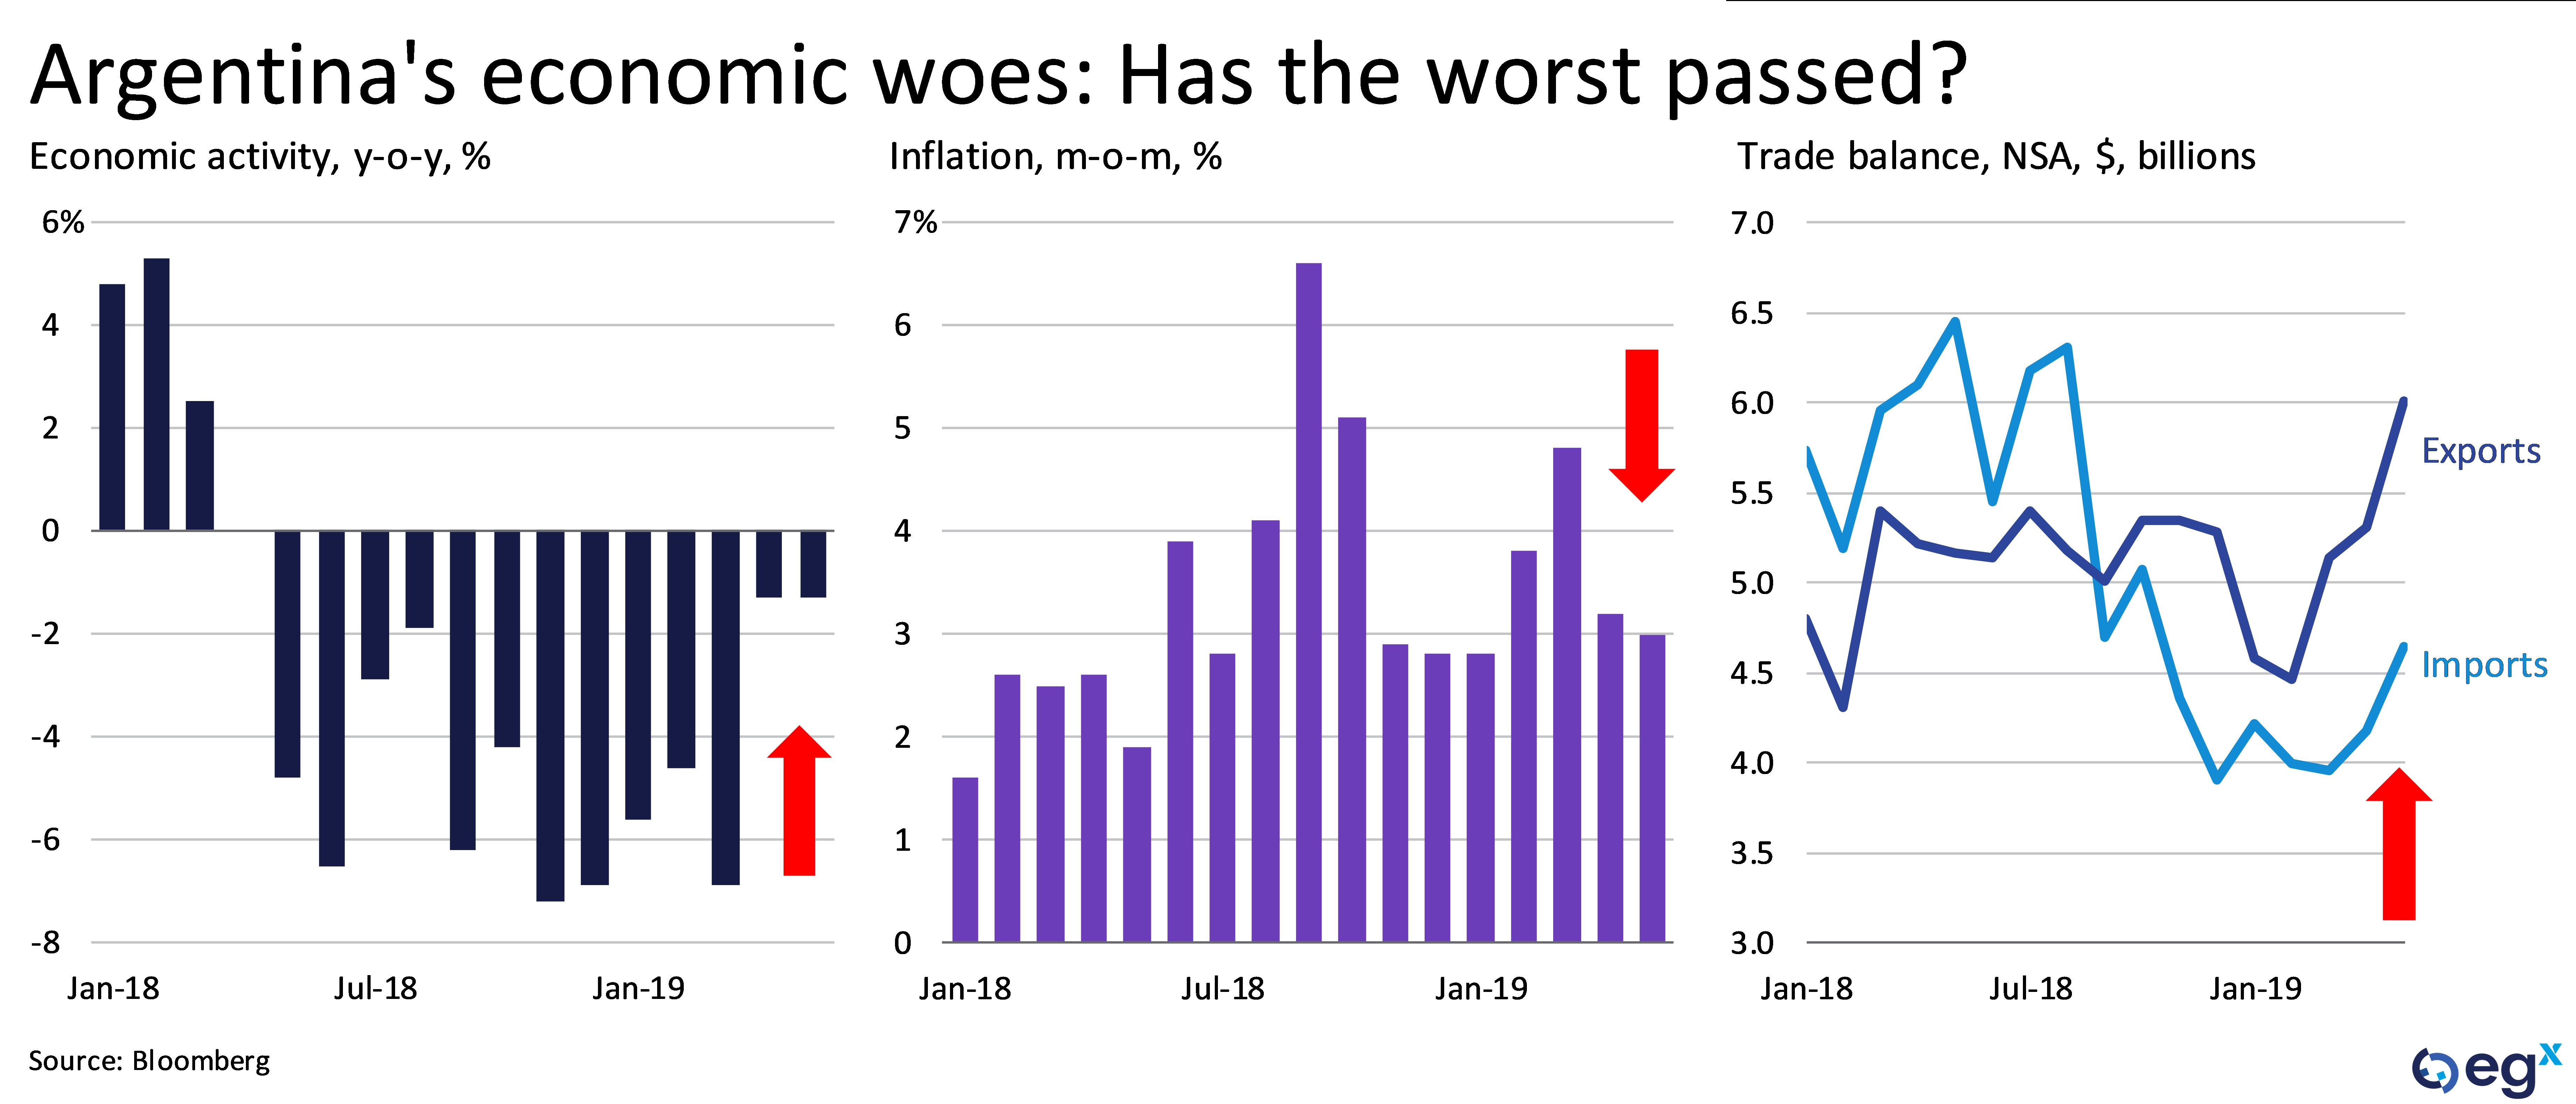 Argentina's economic woes: Has the worst passed?